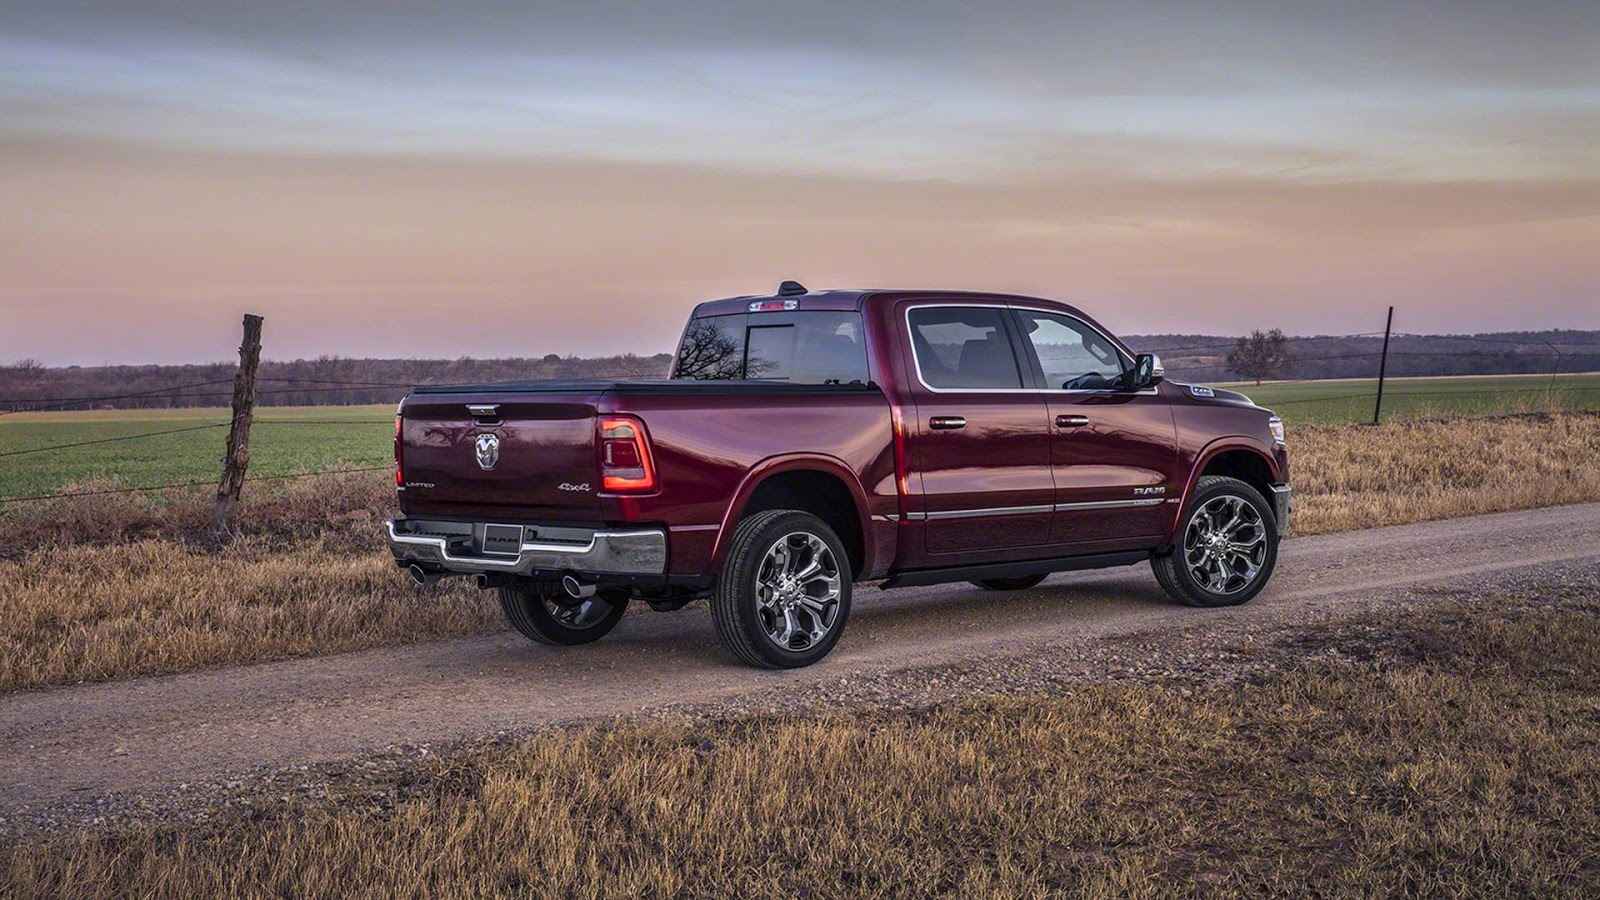 2020 Dodge Ram 1500 >> 2019 Ram 1500 Pickup Goes Official With 48-Volt Mild-Hybrid System - autoevolution